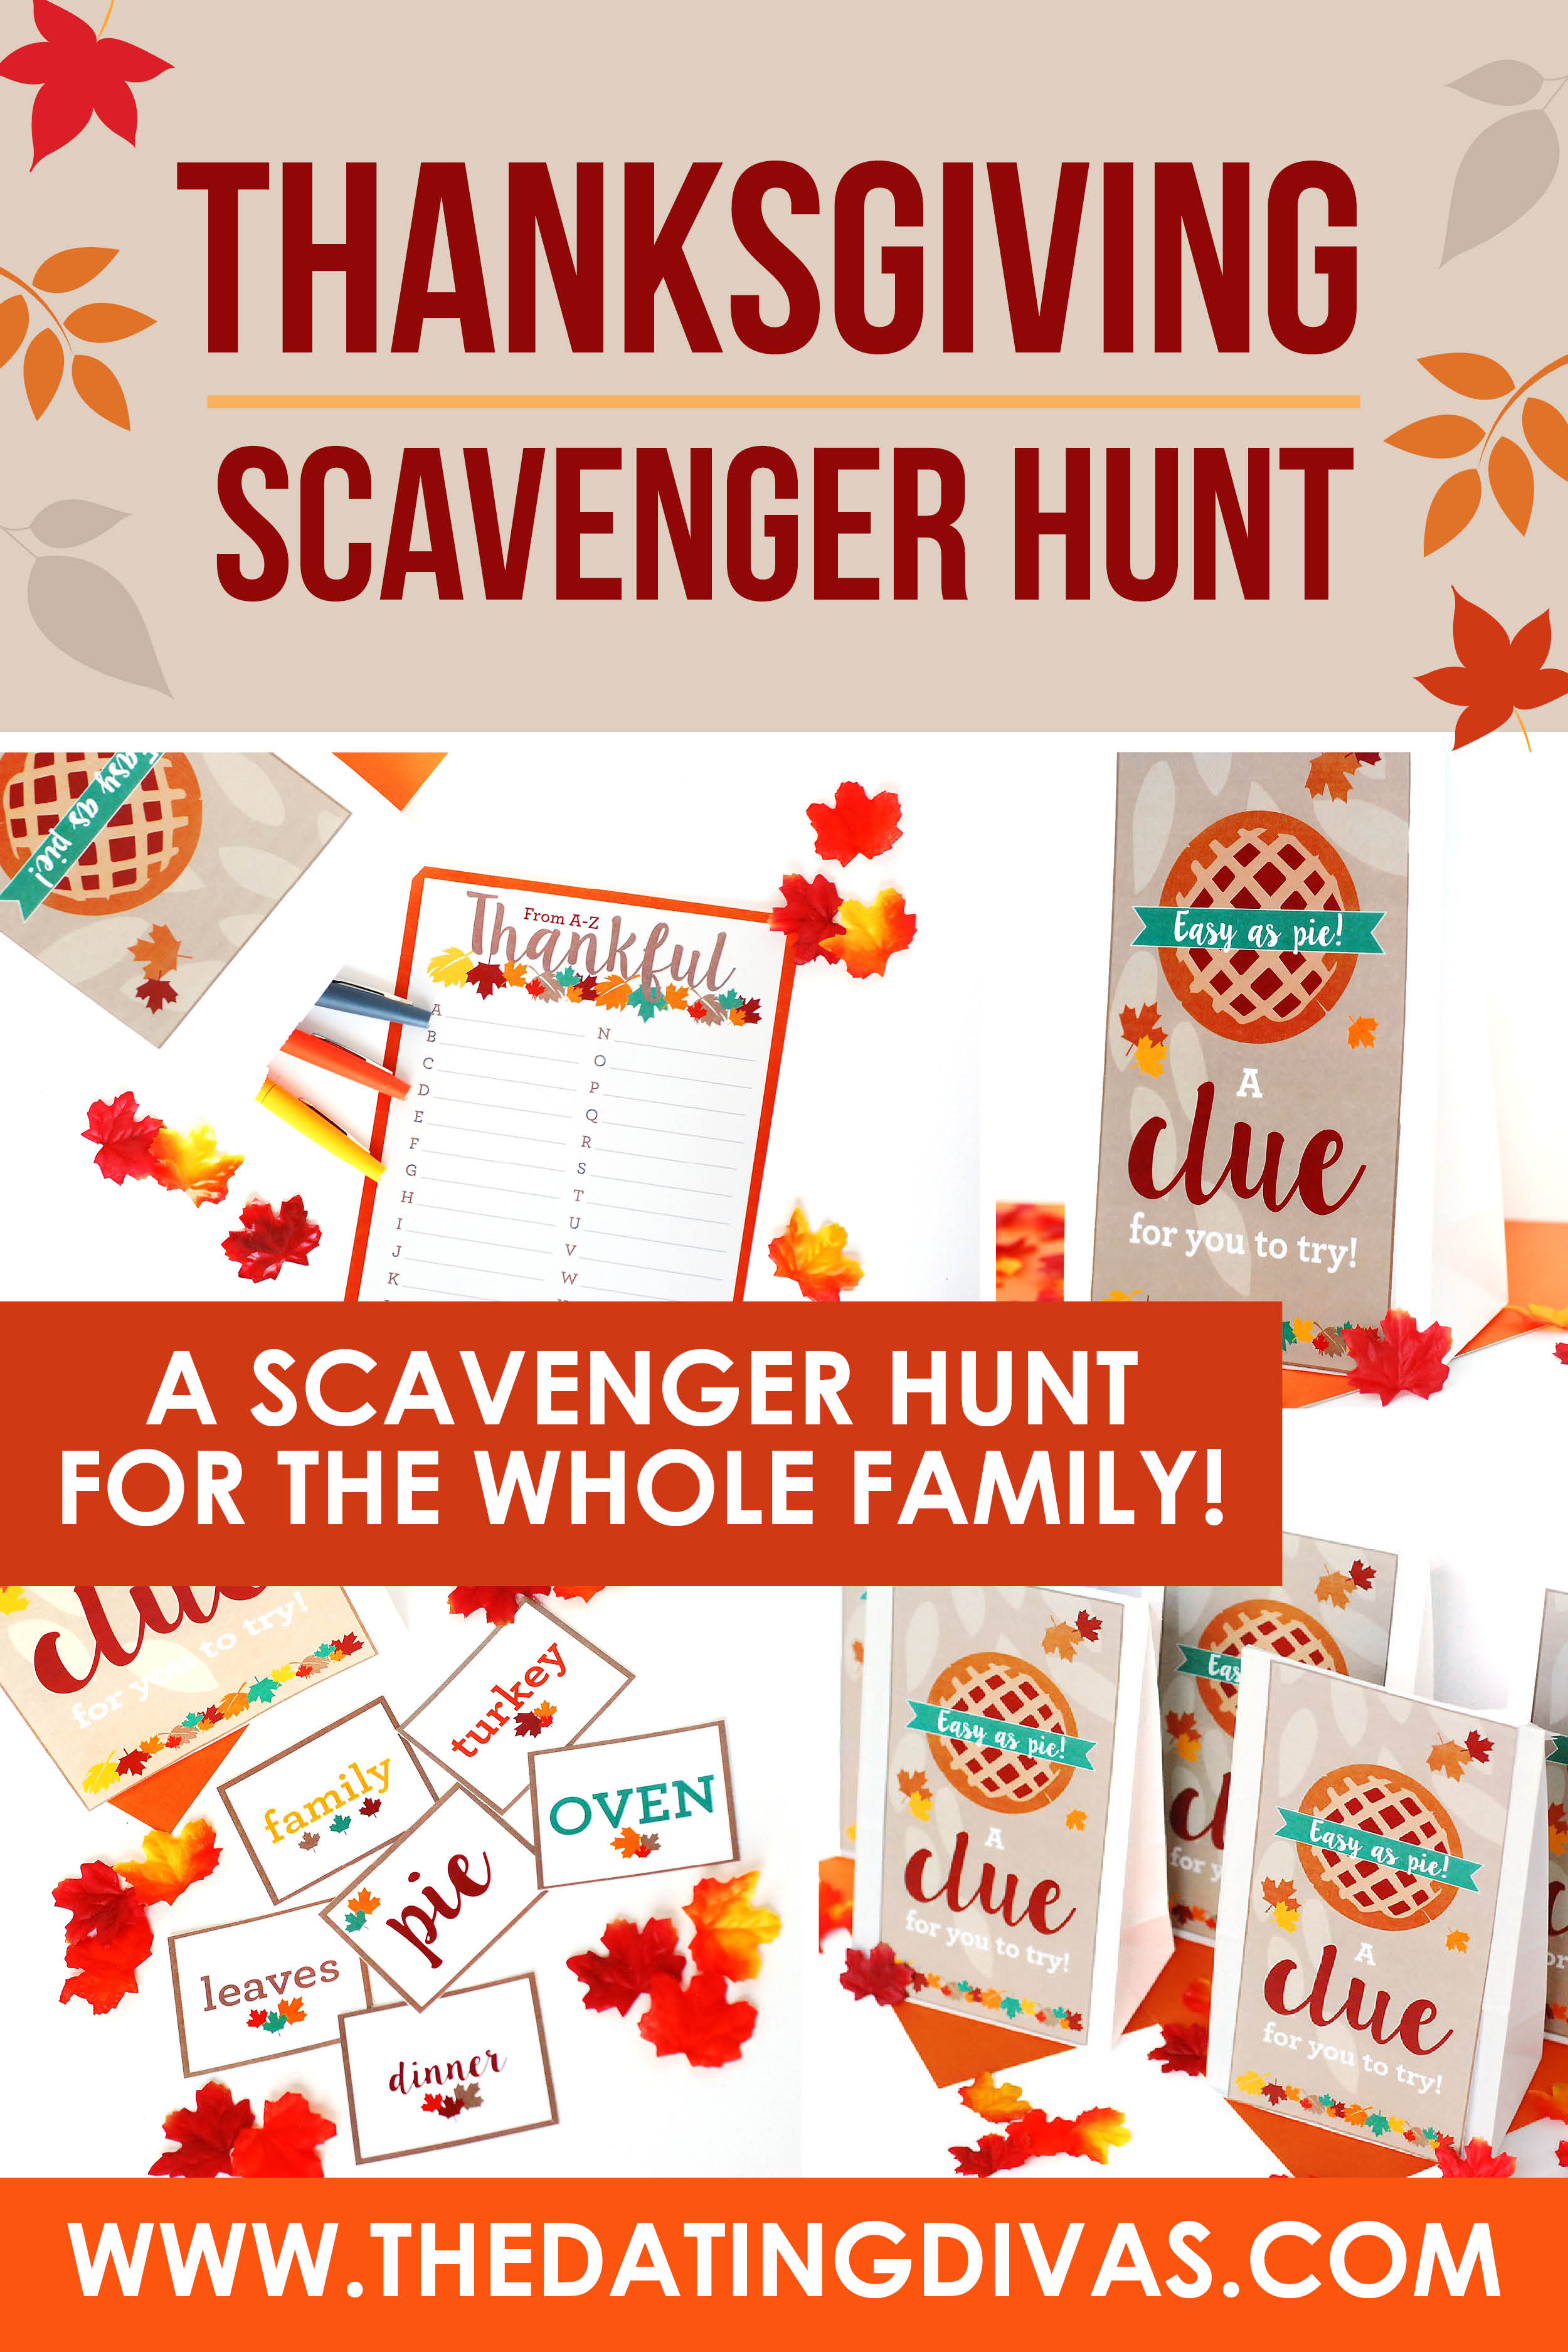 So many cute Thanksgiving Scavenger Hunt ideas that are perfect for young and old alike!! Looks like so much fun! #thedatingdivas #thanksgivingscavengerhunt #thanksgivingriddlesforadults #thanksgivingtreasurehunt